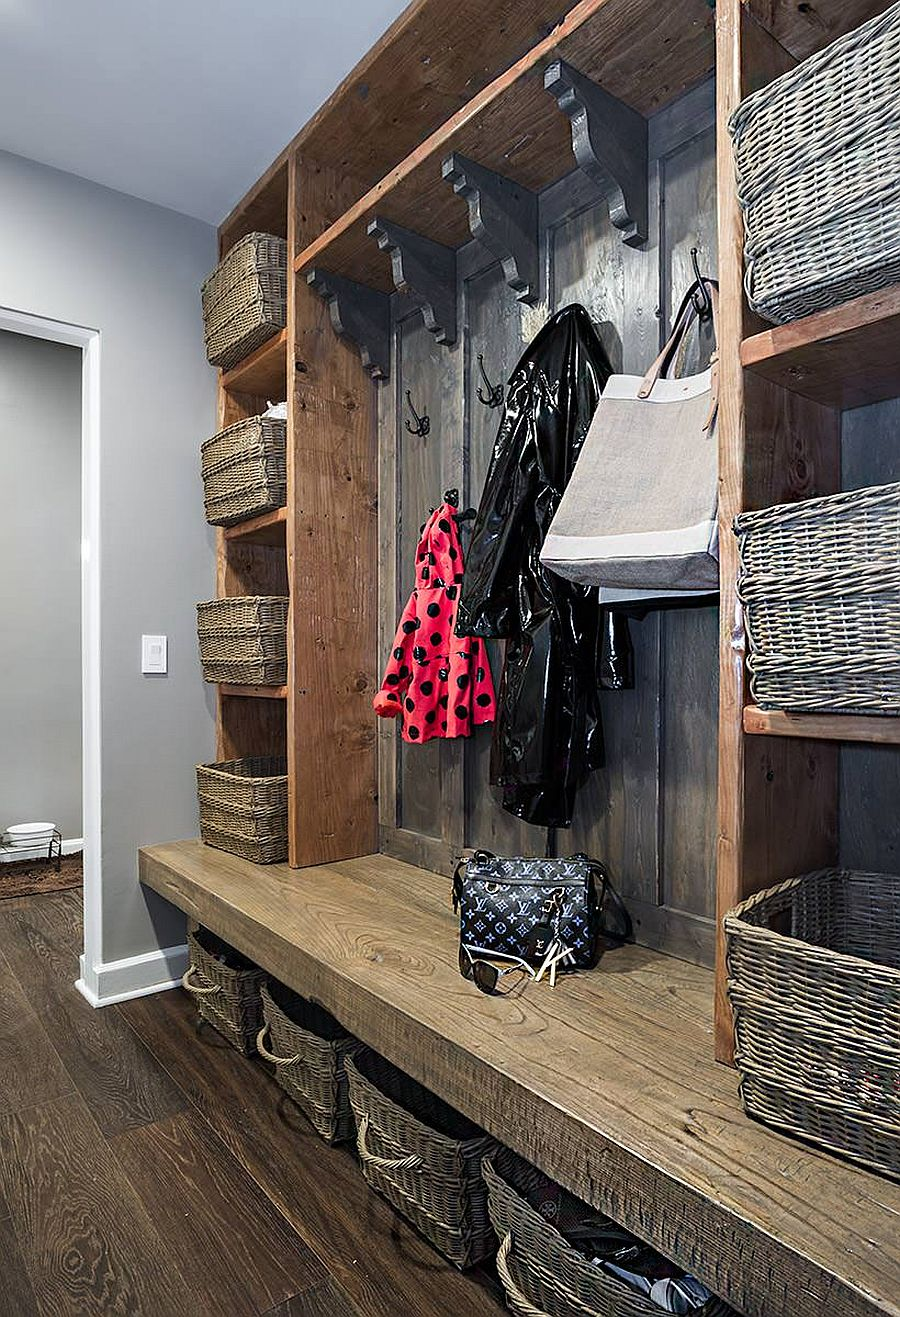 Custom entry cabinets and shelves created using reclaimed wood for the rustic home